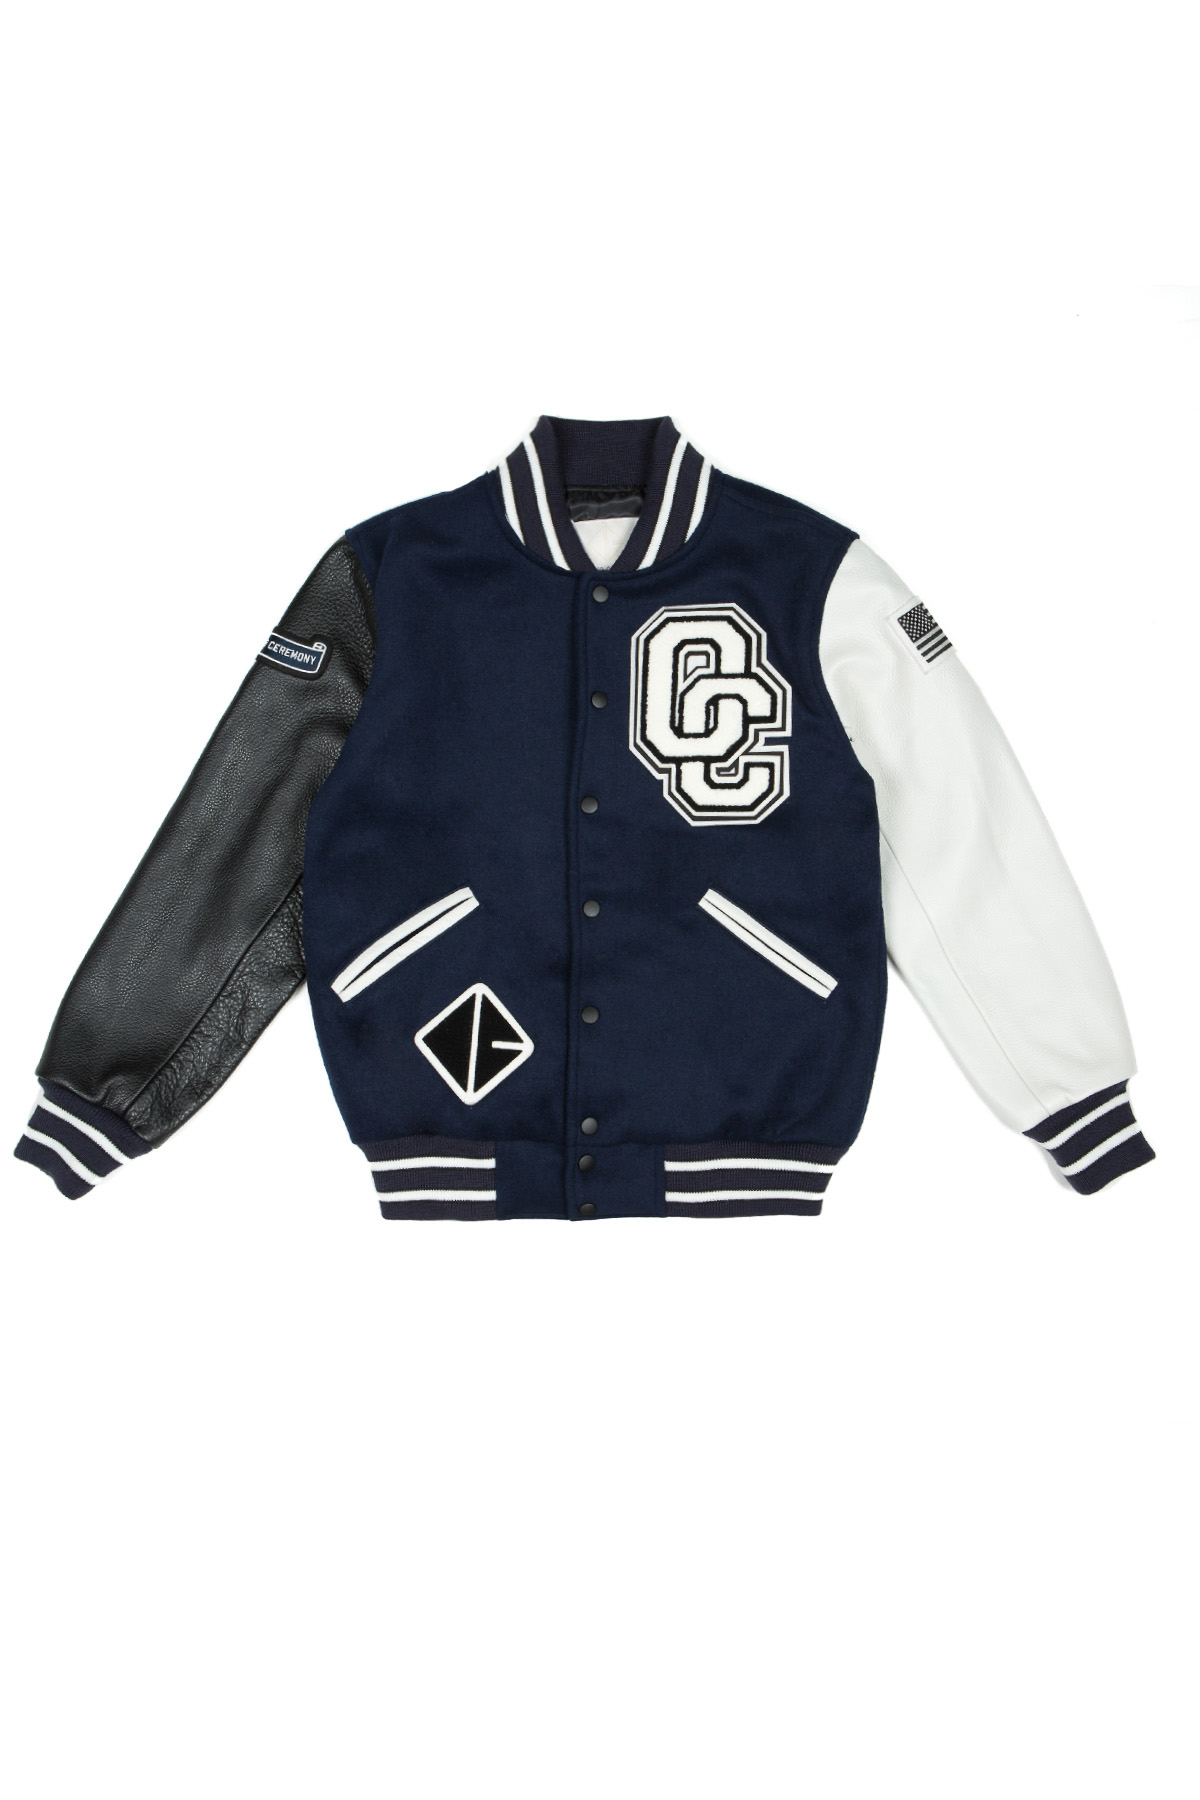 OPENING CEREMONY OC EXCLUSIVE VARSITY JACKET - WOMEN - OUTERWEAR - JACKETS - OPENING CEREMONY